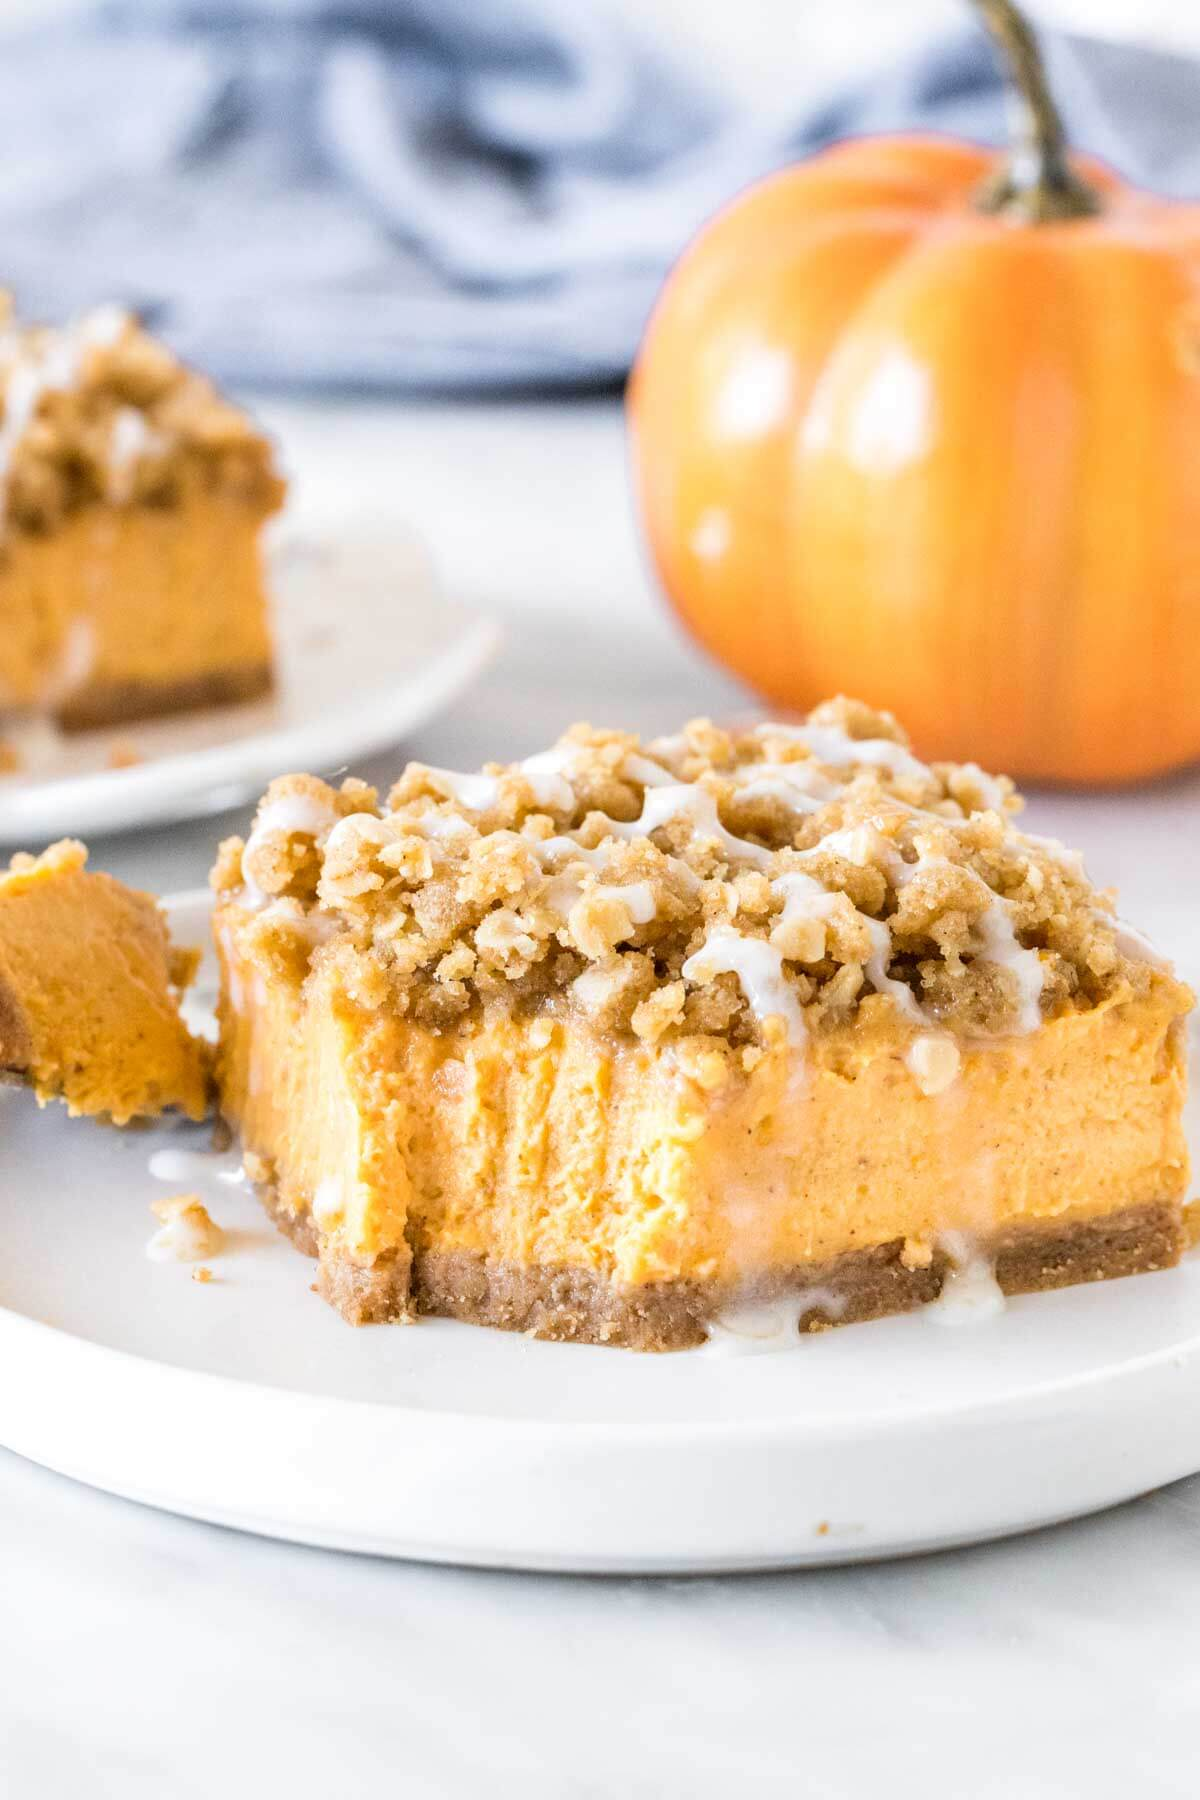 Slice of pumpkin cheesecake bars with oatmeal topping on a plate.